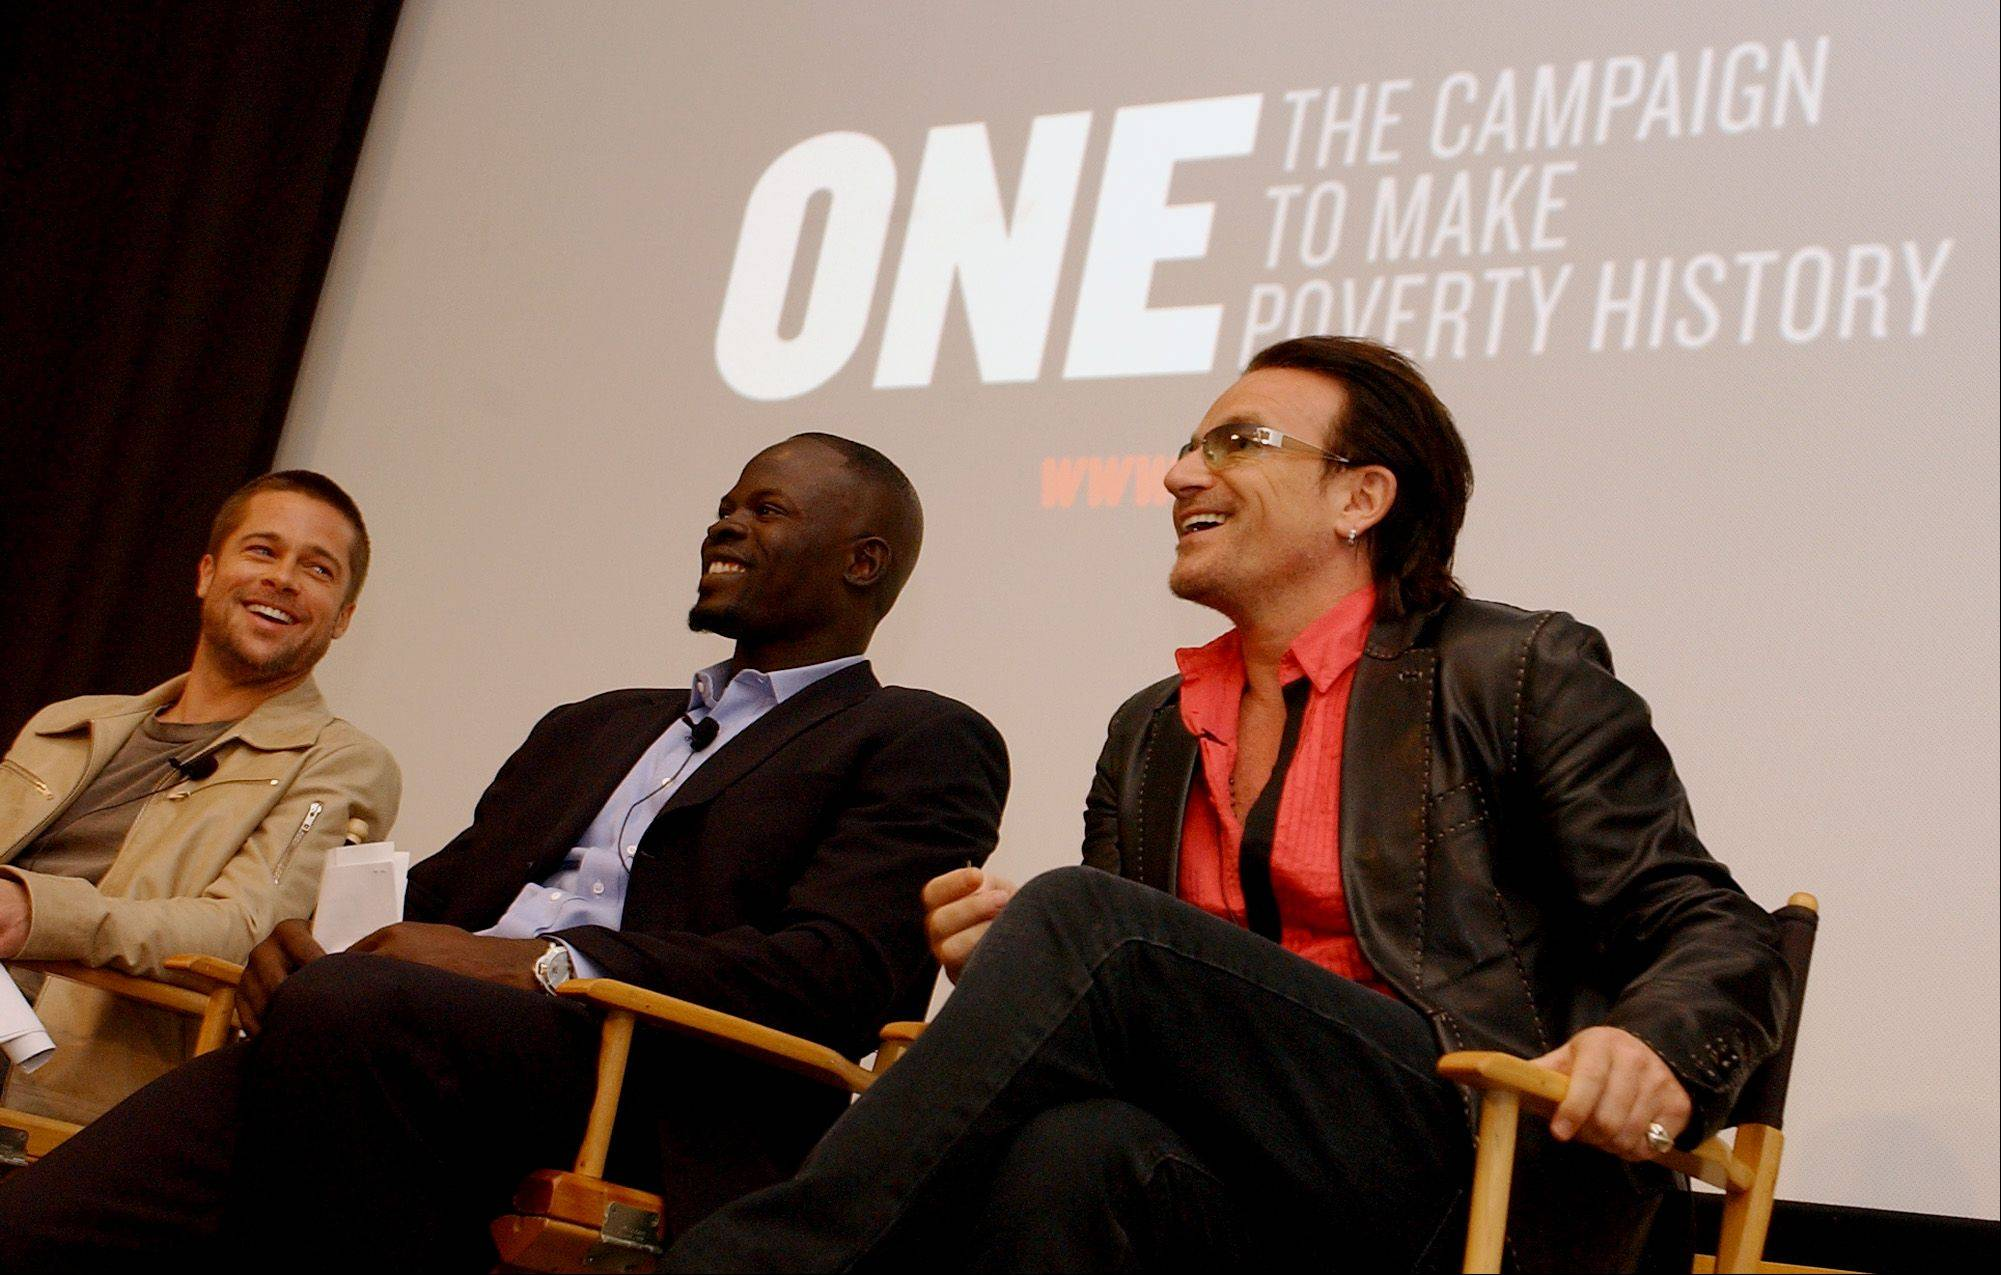 Actors Brad Pitt, left, and Djimon Hounsou, and singer Bono, right, share a light moment during a news conference held to premiere a public service announcement for ONE -- The Campaign to Make Poverty History, Wednesday, April 6, 2005, in Beverly Hills, Calif.